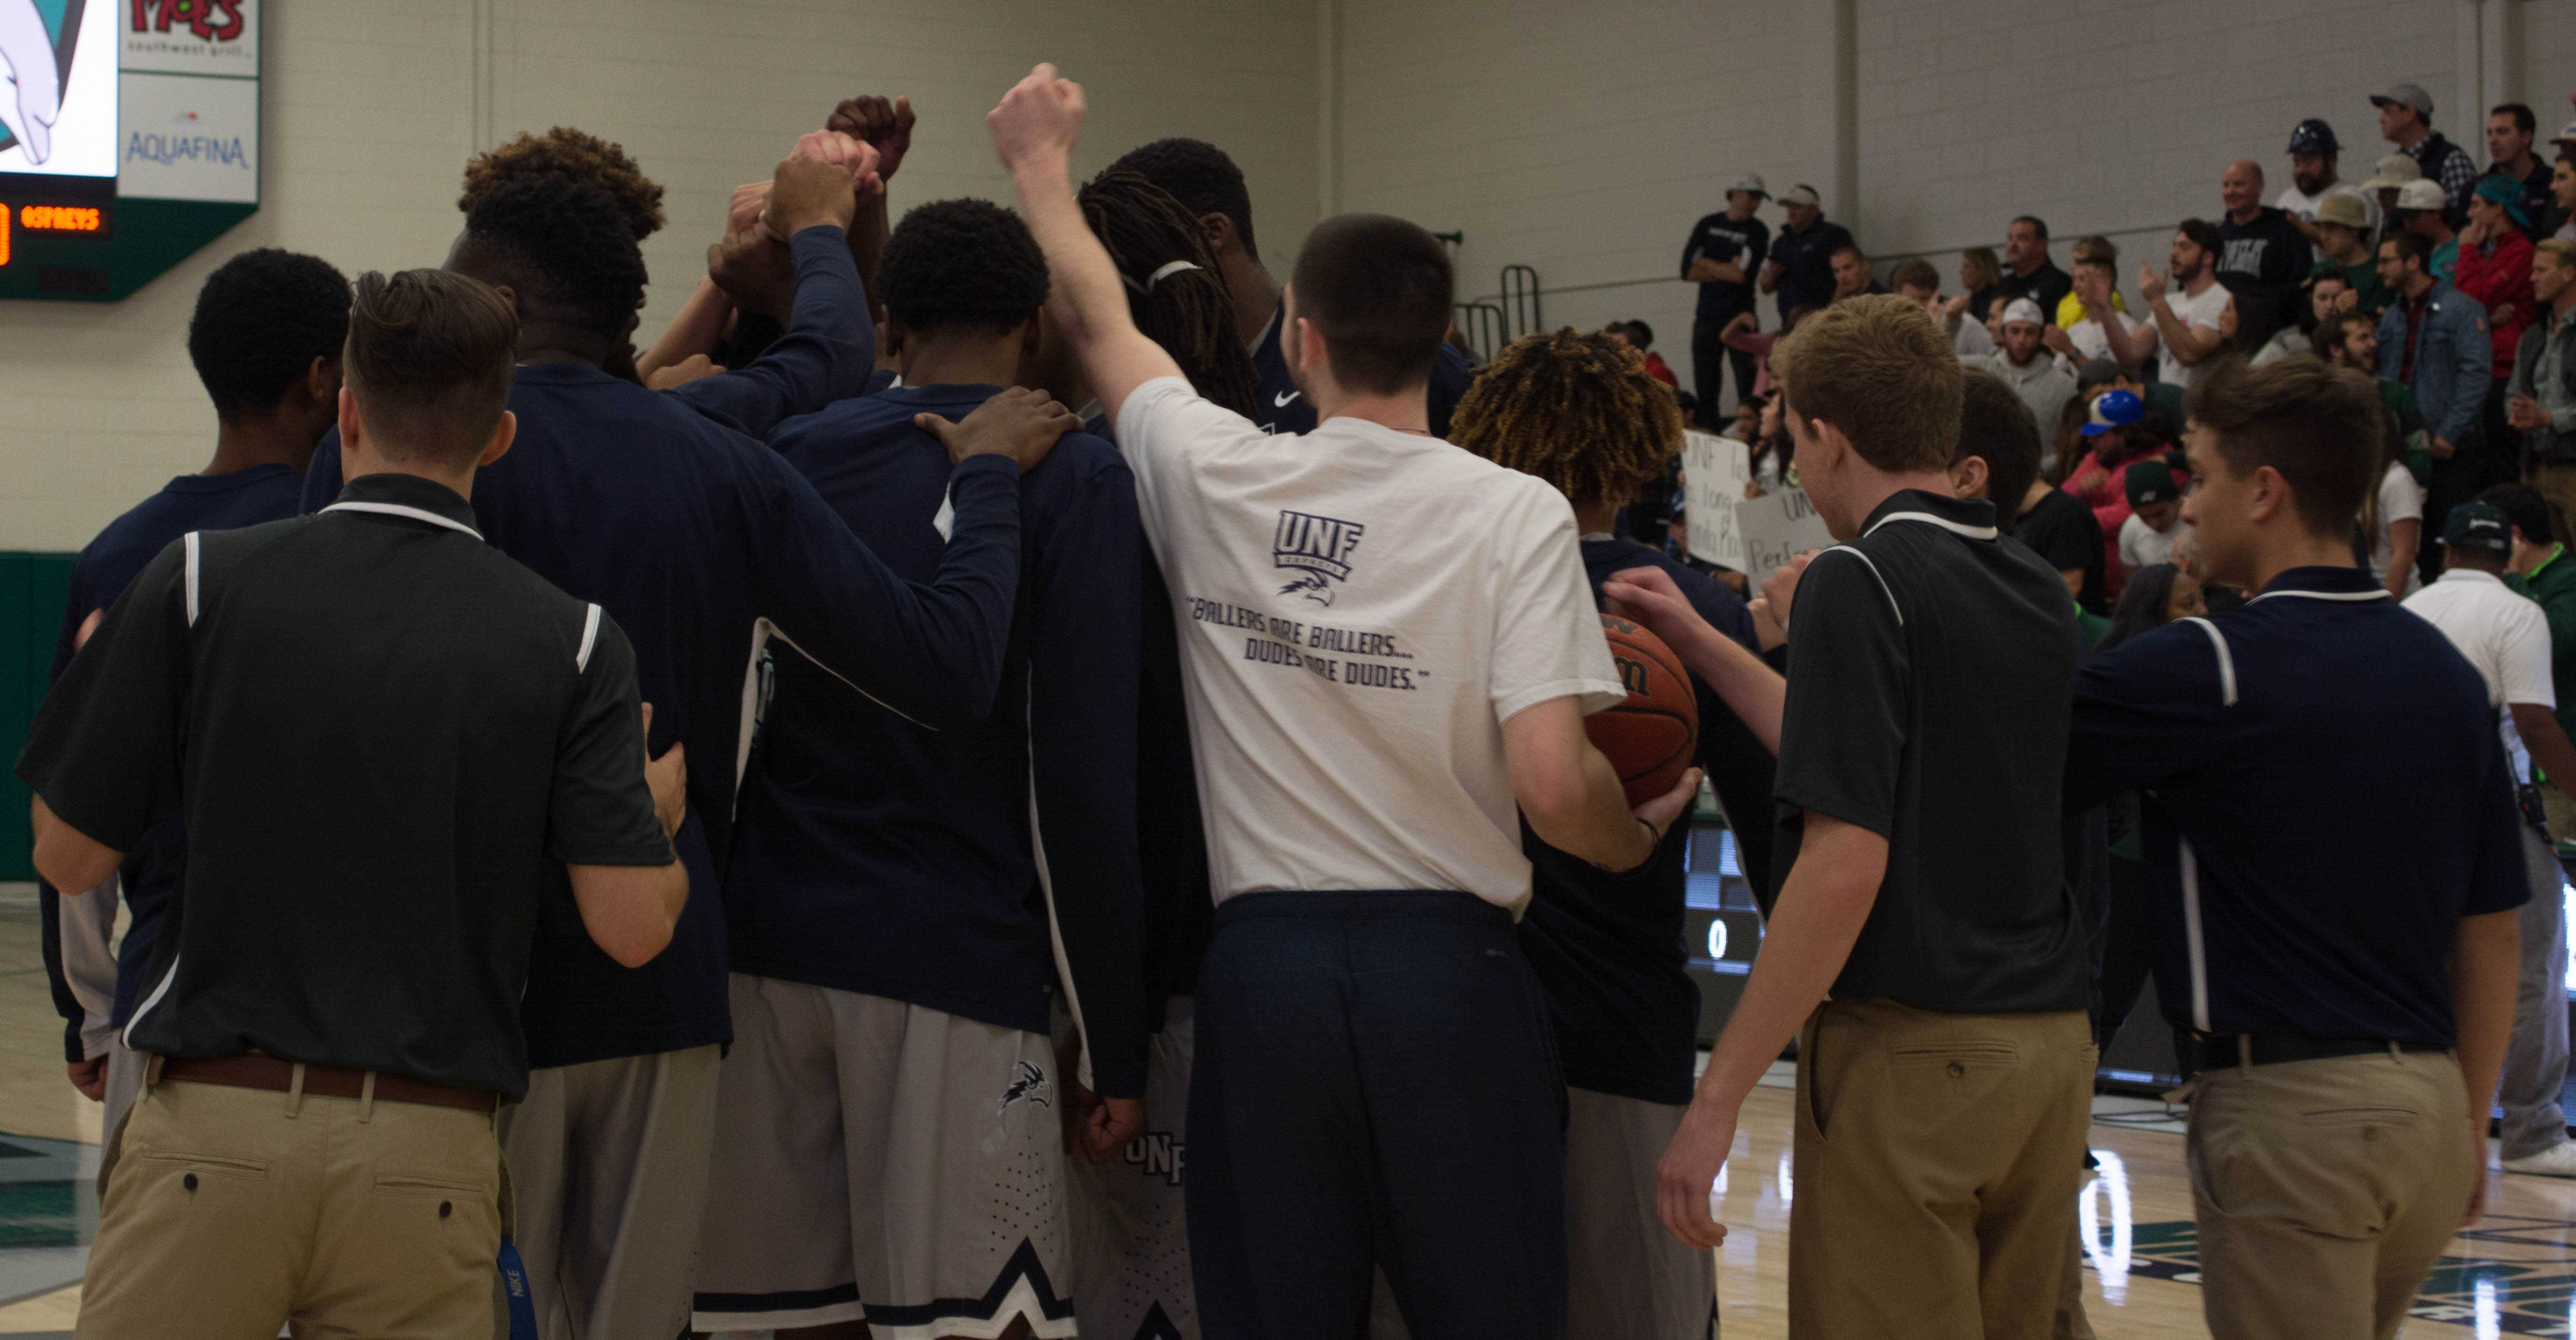 UNF Ospreys win 7th straight River City Rumble